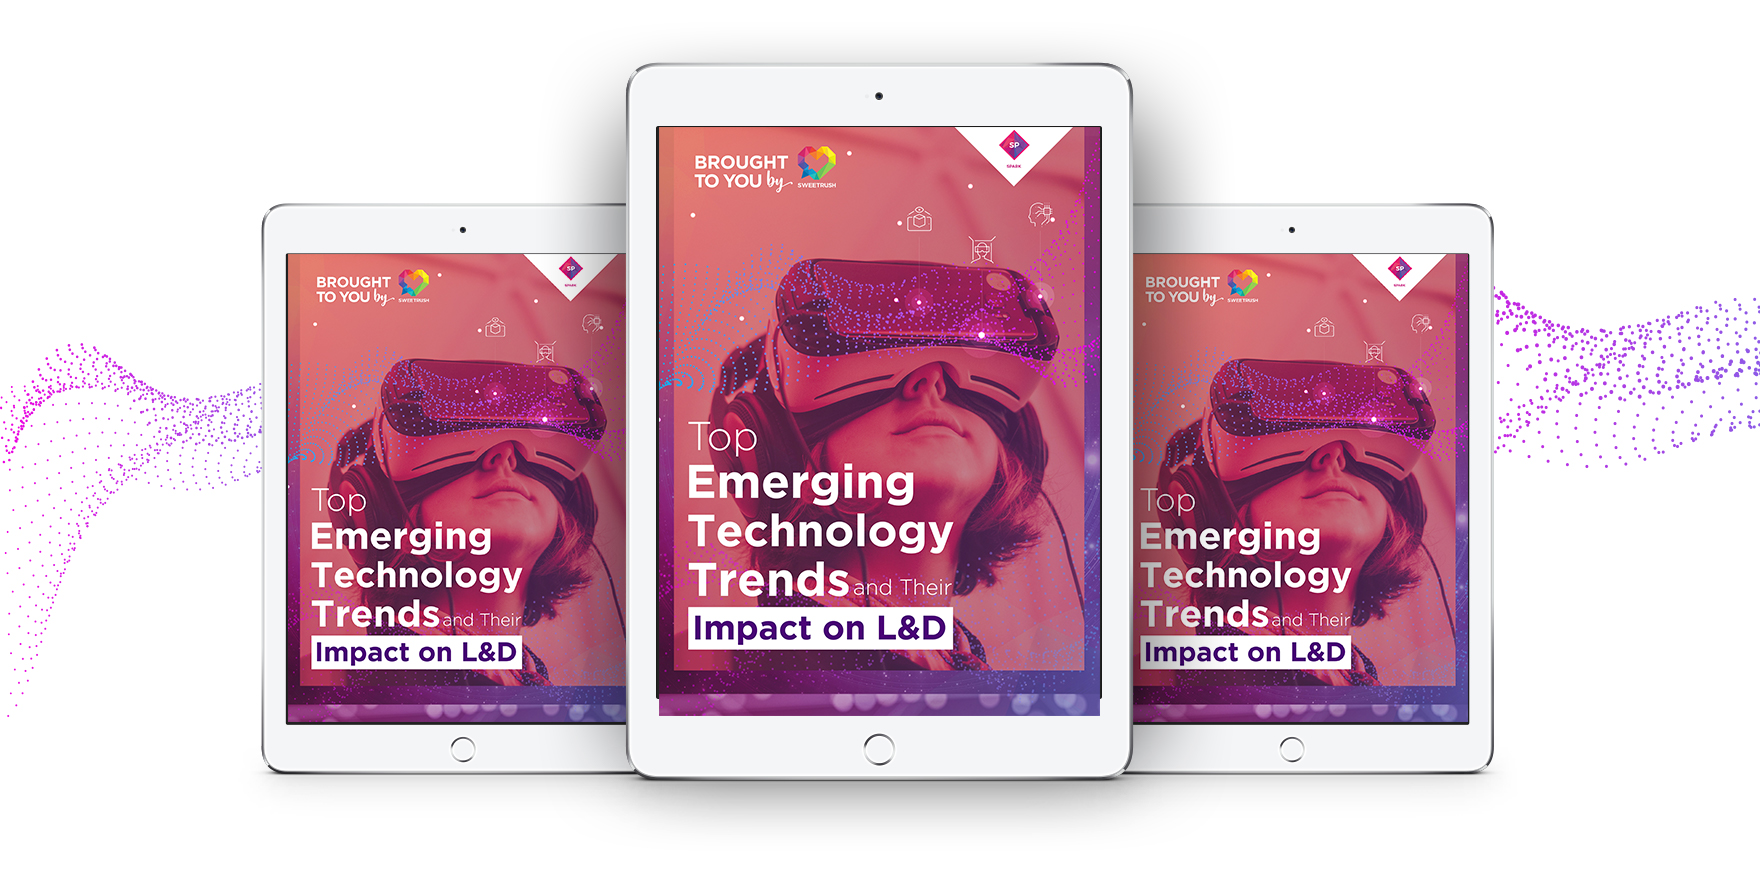 SweetRush Presents New eBook on Emerging Technology Trends